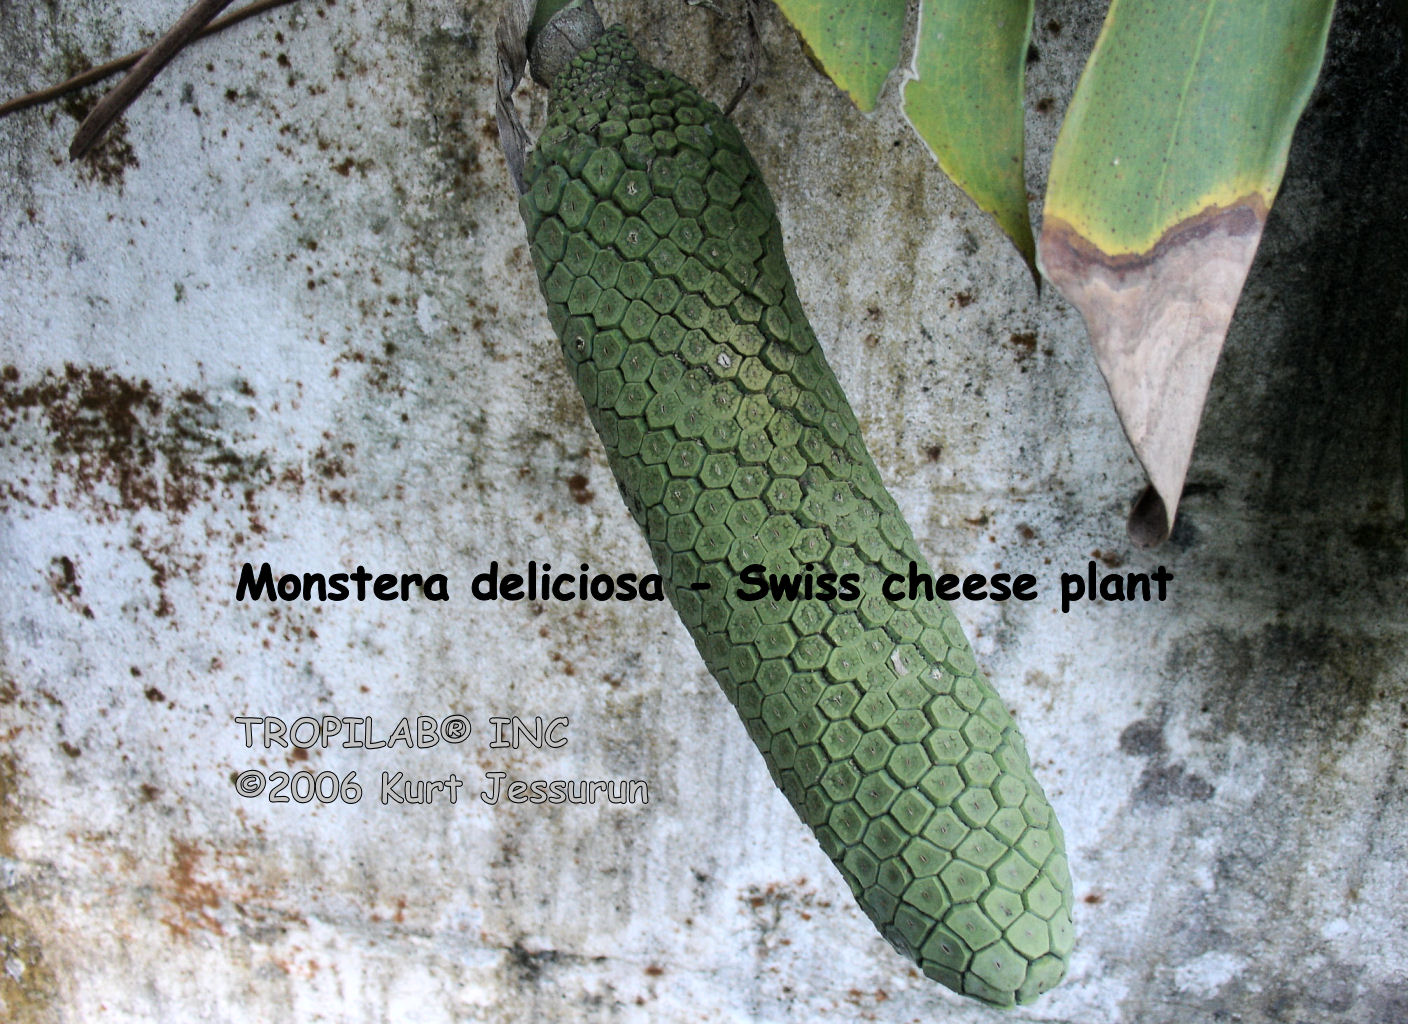 Monstera deliciosa - Swiss cheese plant fruits